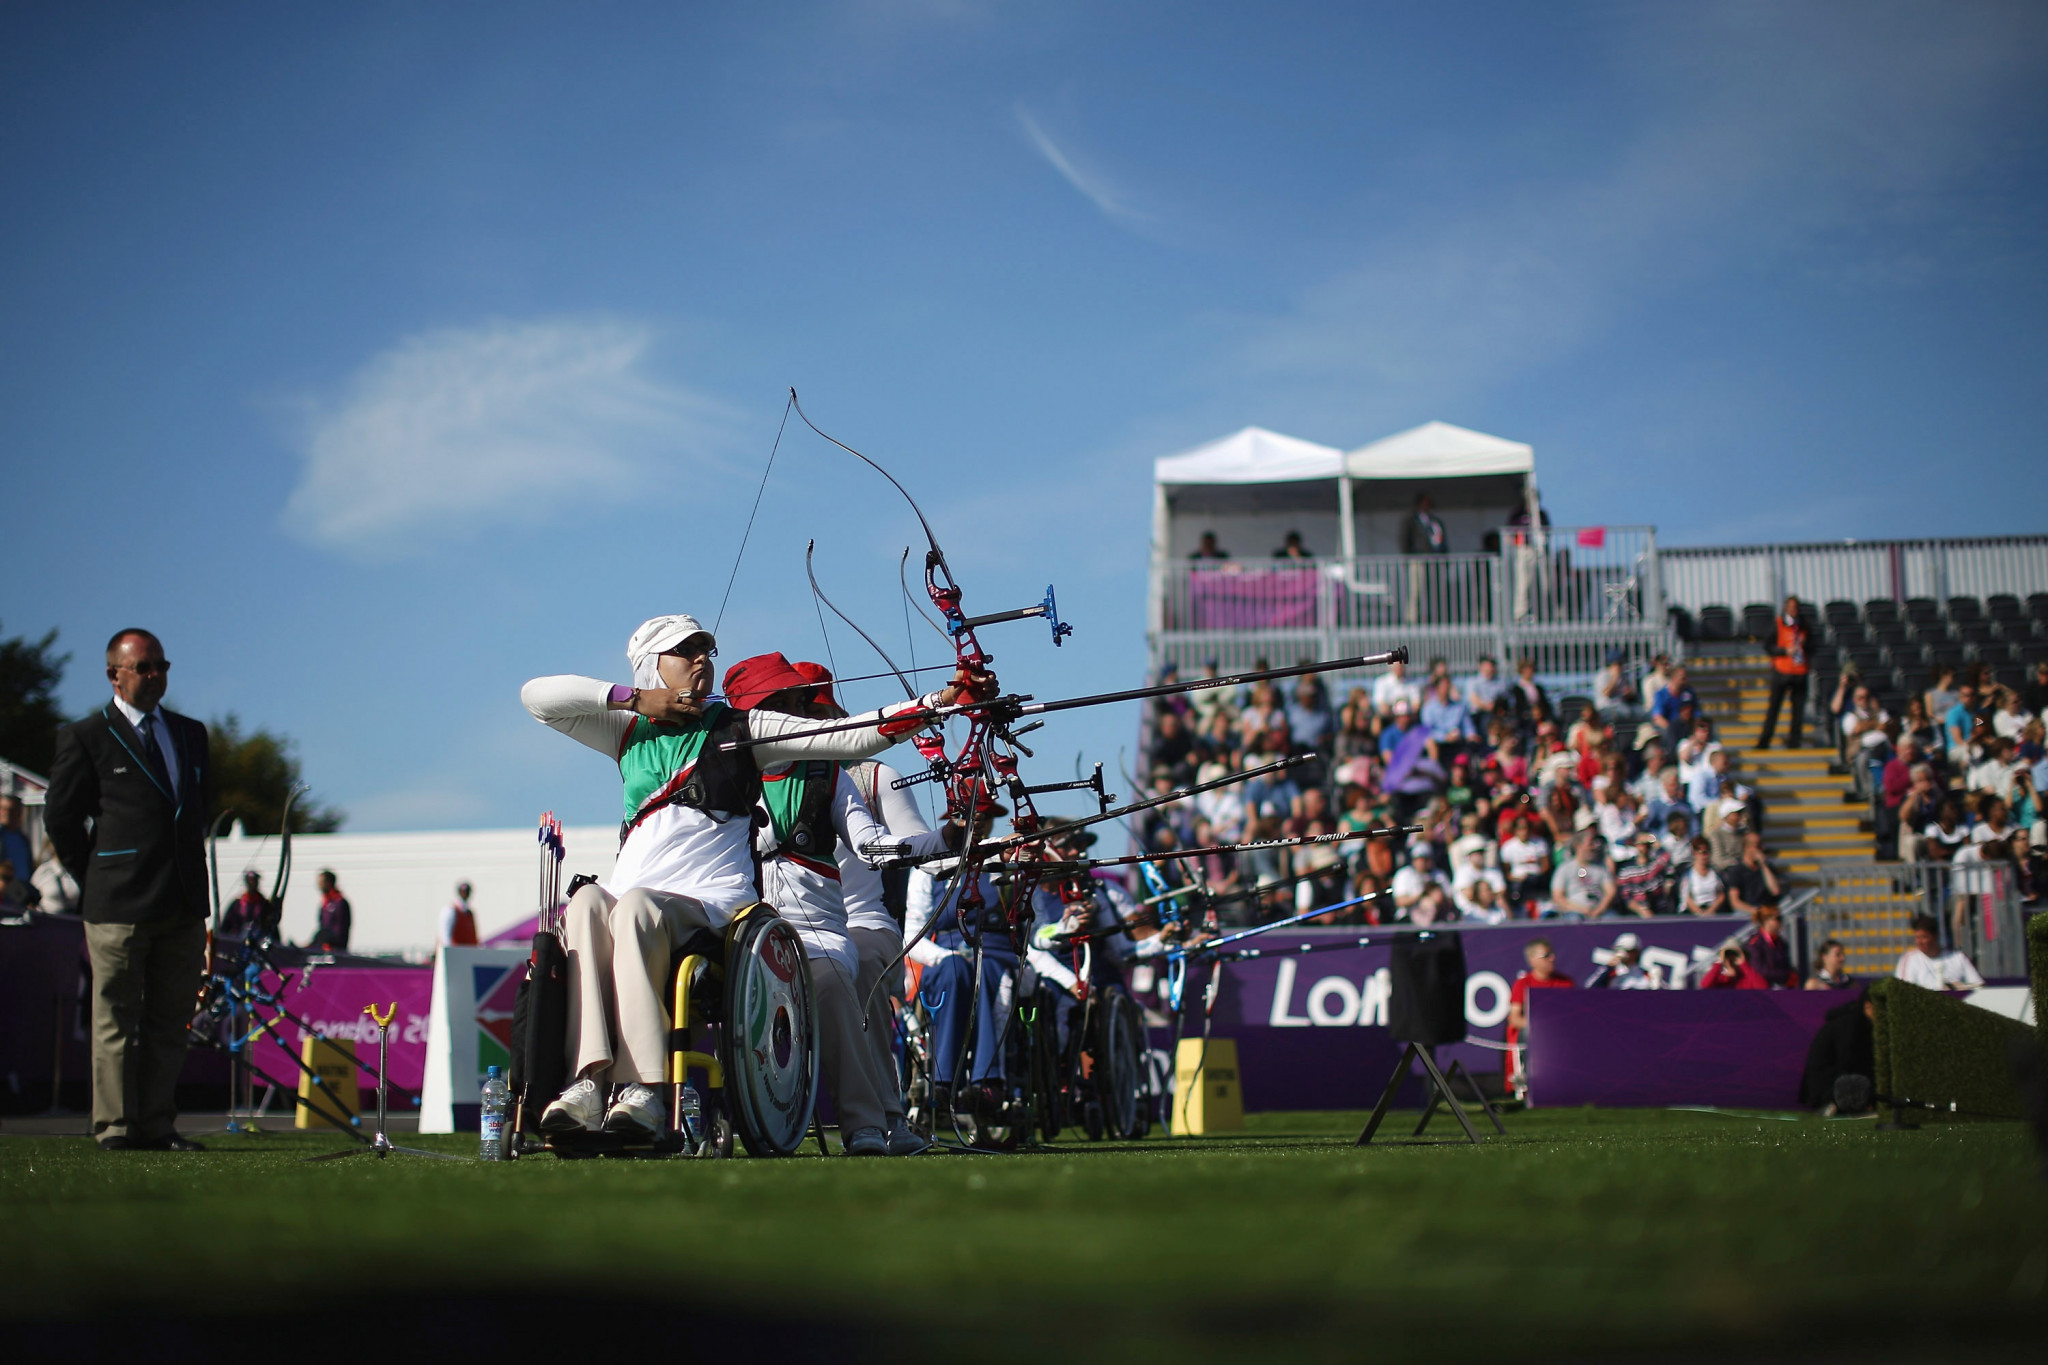 Three-person Para archery team events to be replaced by doubles